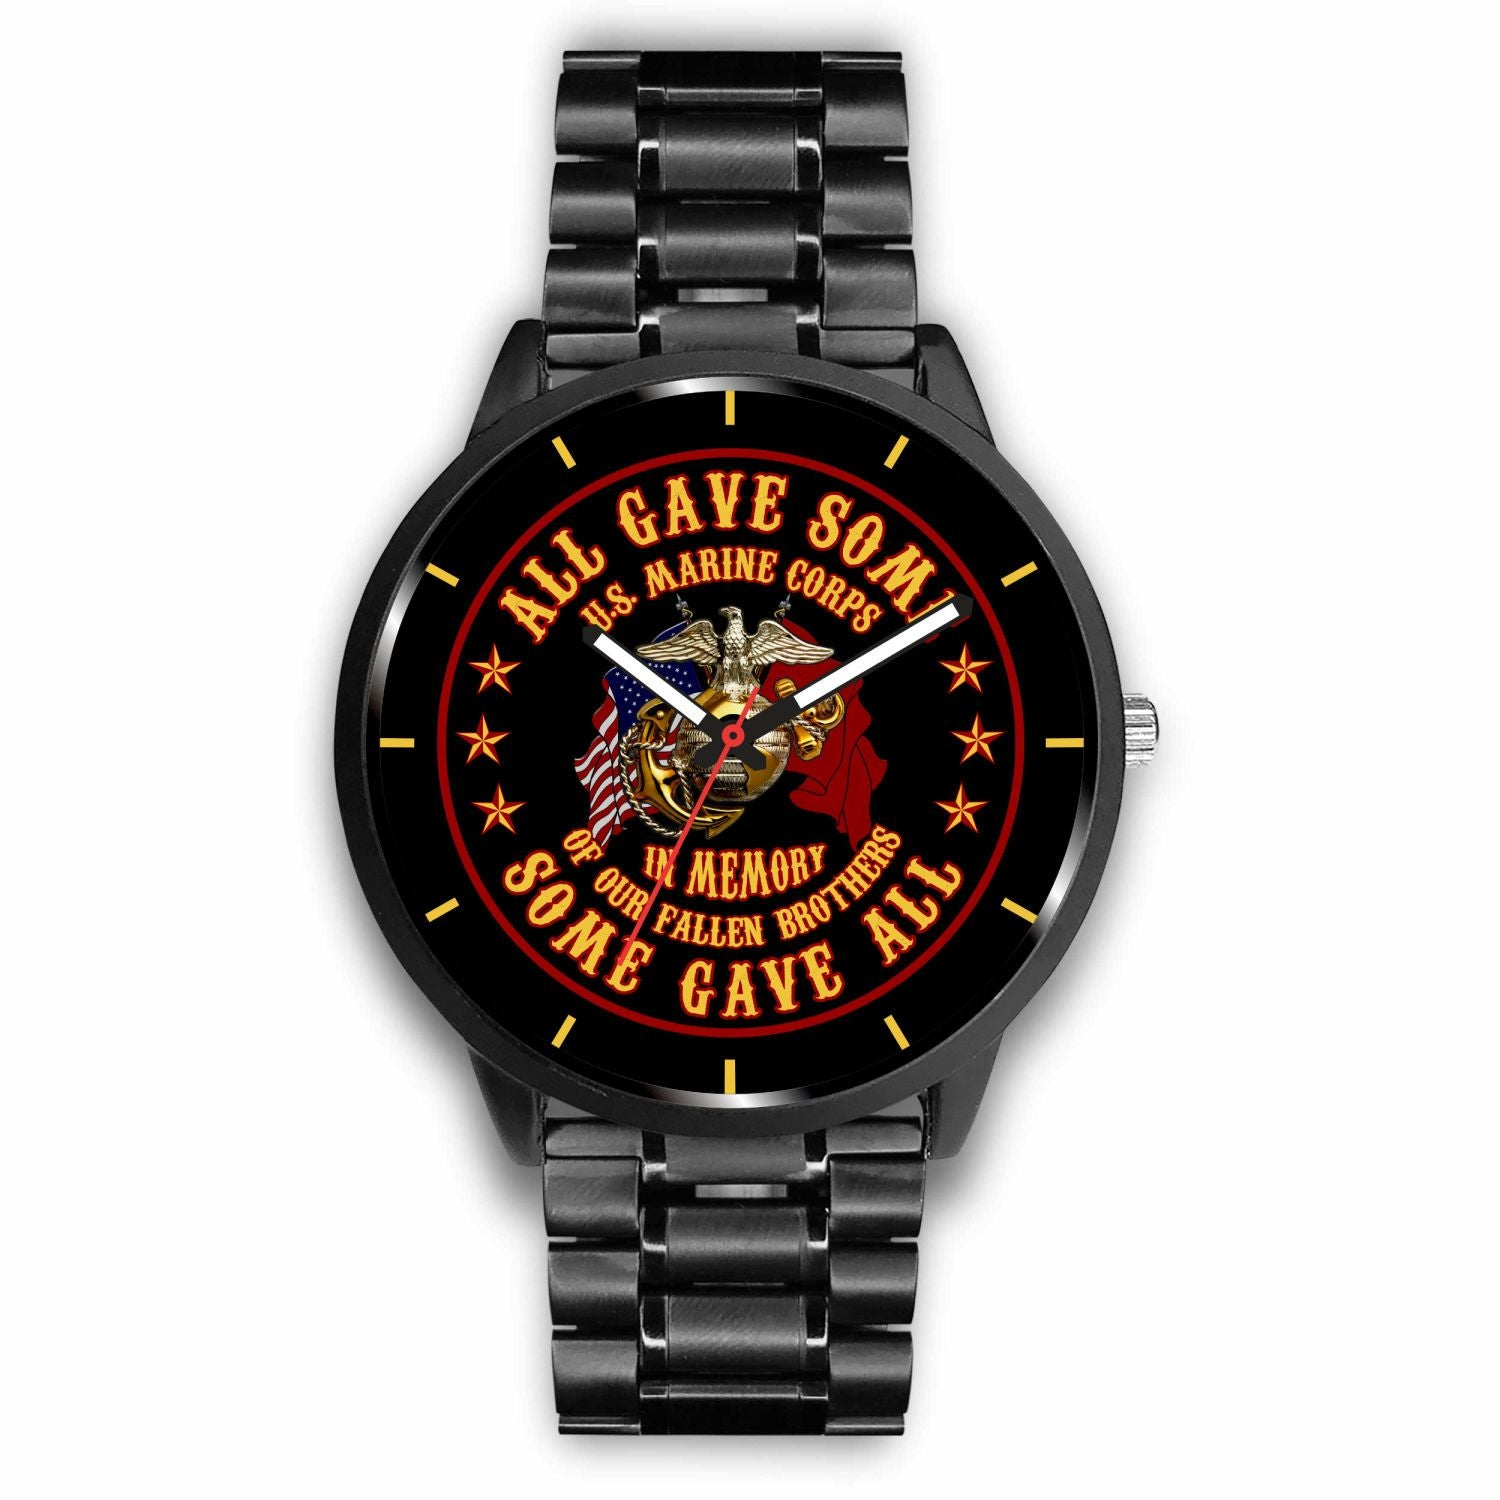 Buy U.S MARINE CORPS ALL GAVE SOME SOME GAVE ALL VETERAN WATCH - Familyloves hoodies t-shirt jacket mug cheapest free shipping 50% off